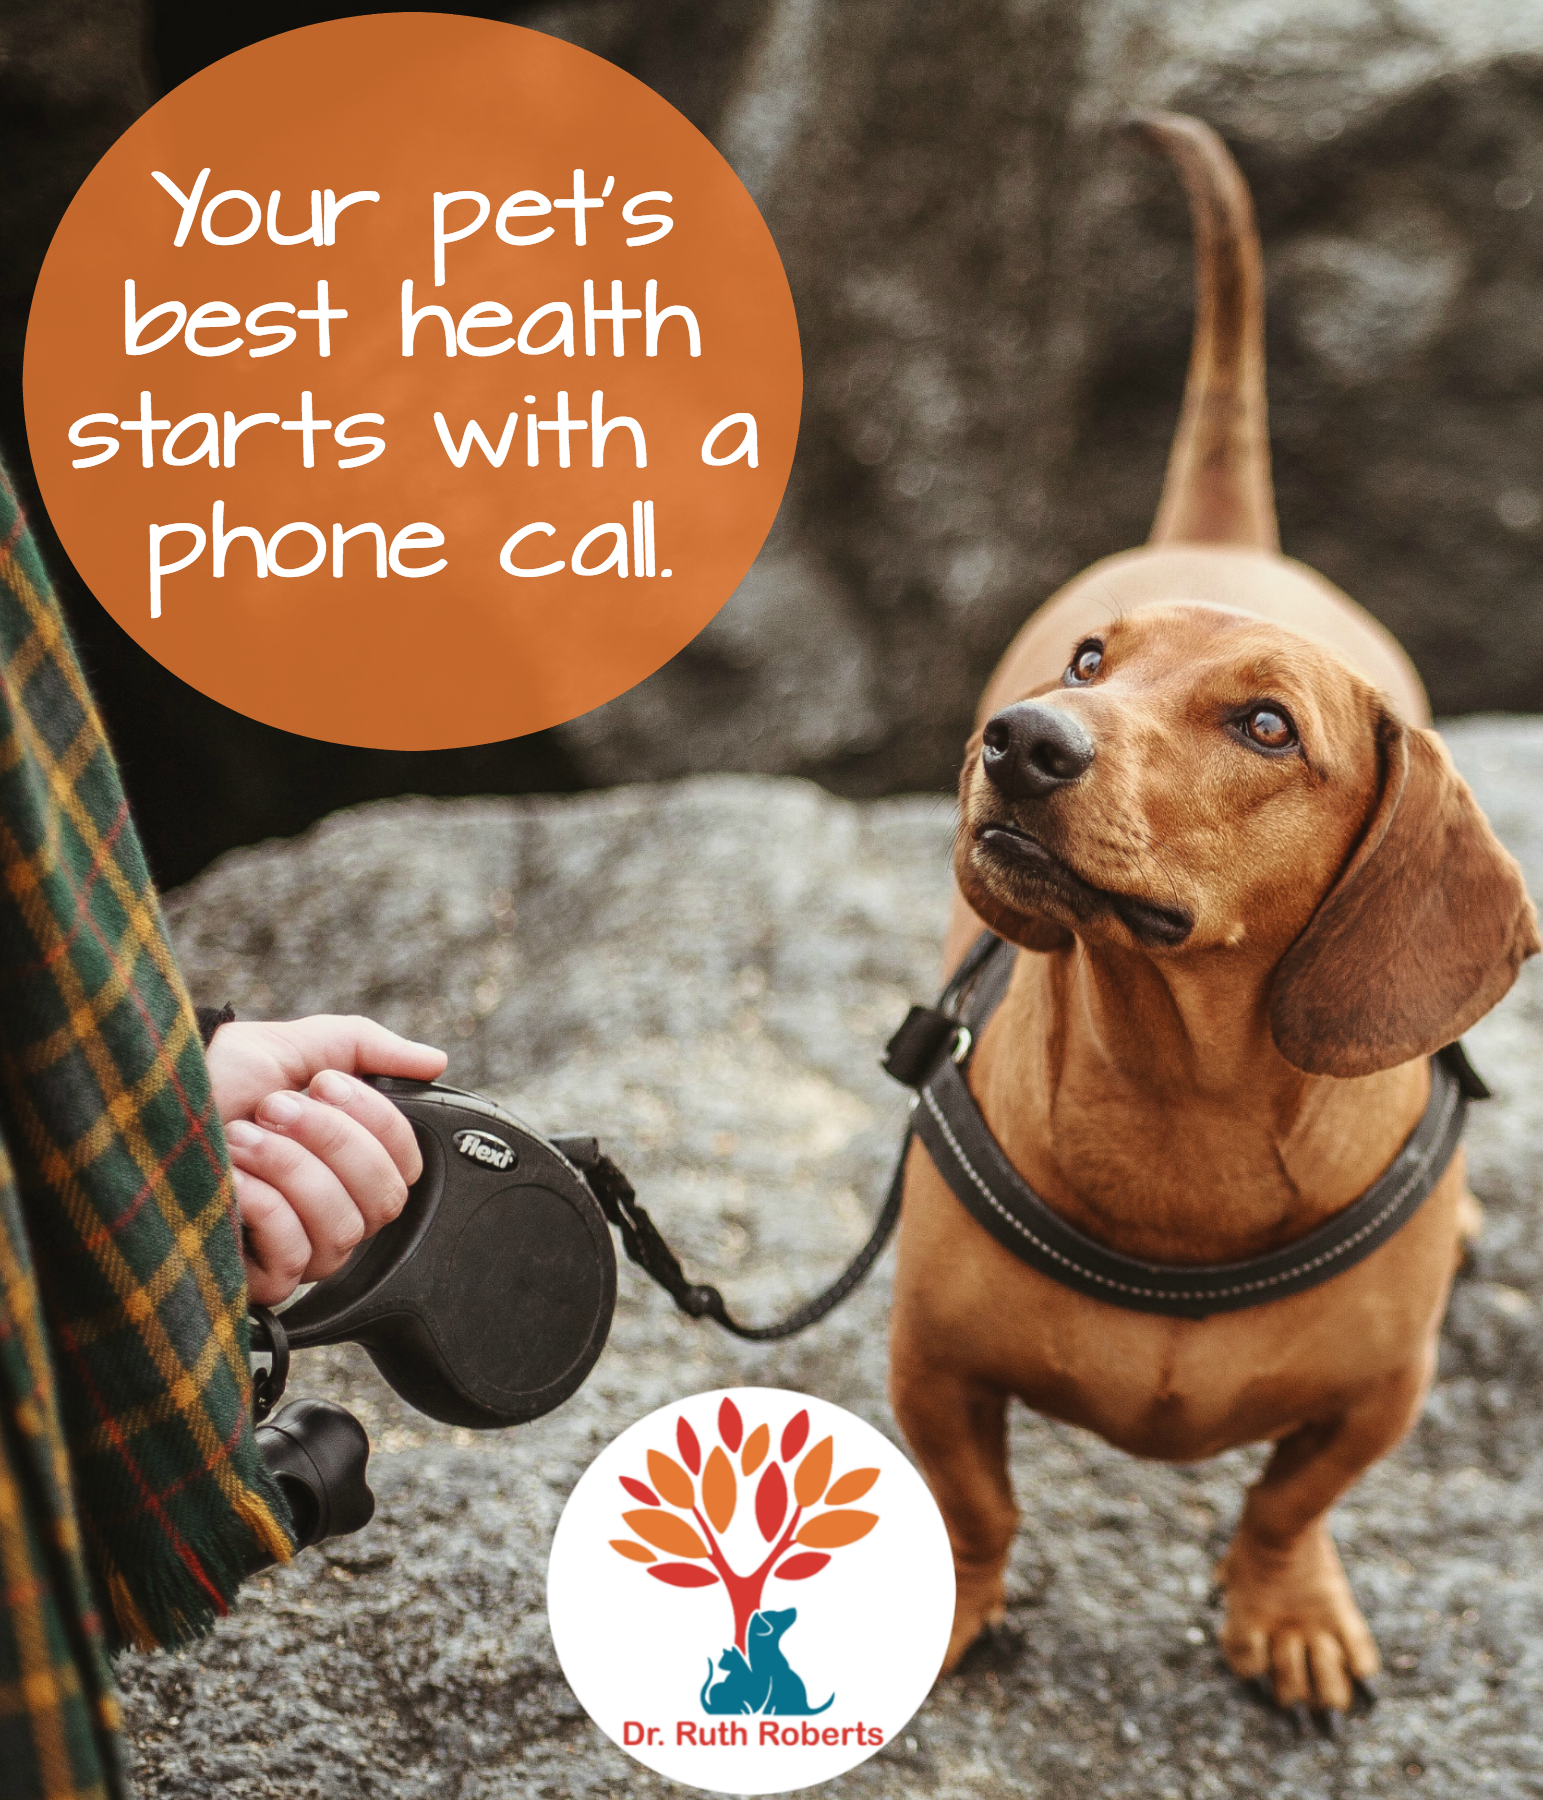 Get a health plan for your pet that helps them heal and